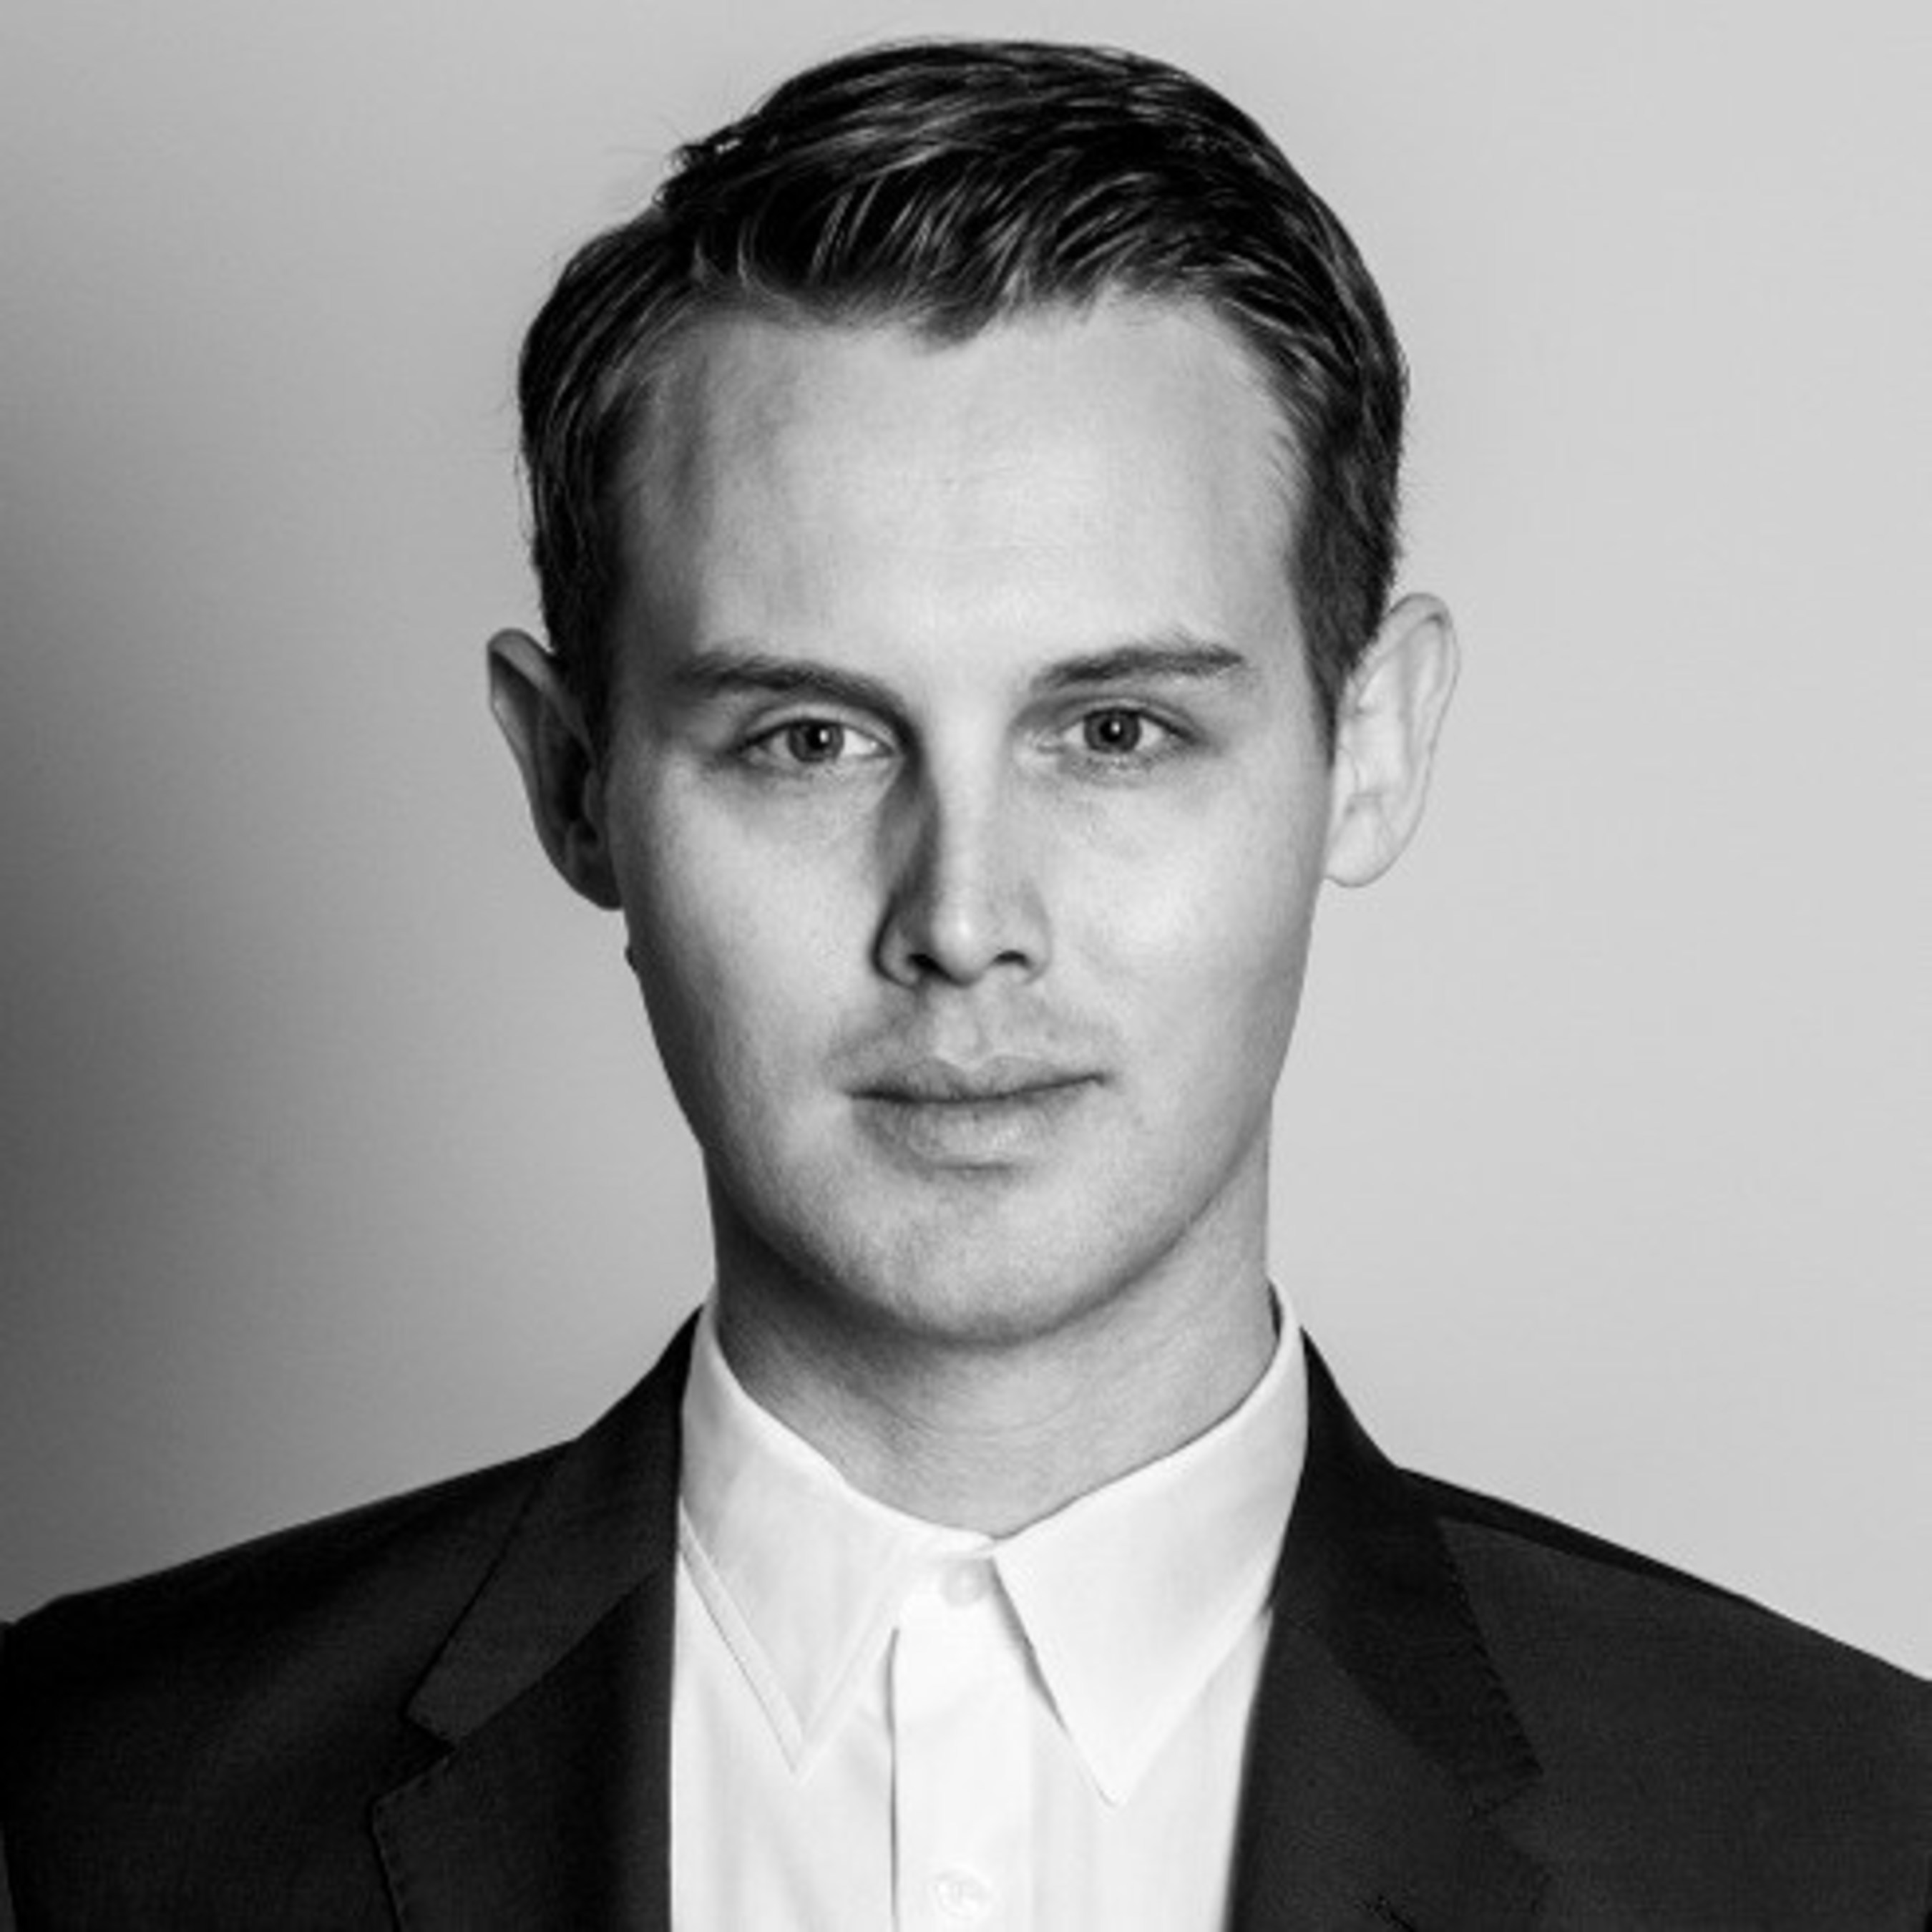 YOOX NET-A-PORTER GROUP today announces the appointment of Matthew Woolsey as Managing Director of NET-A-PORTER